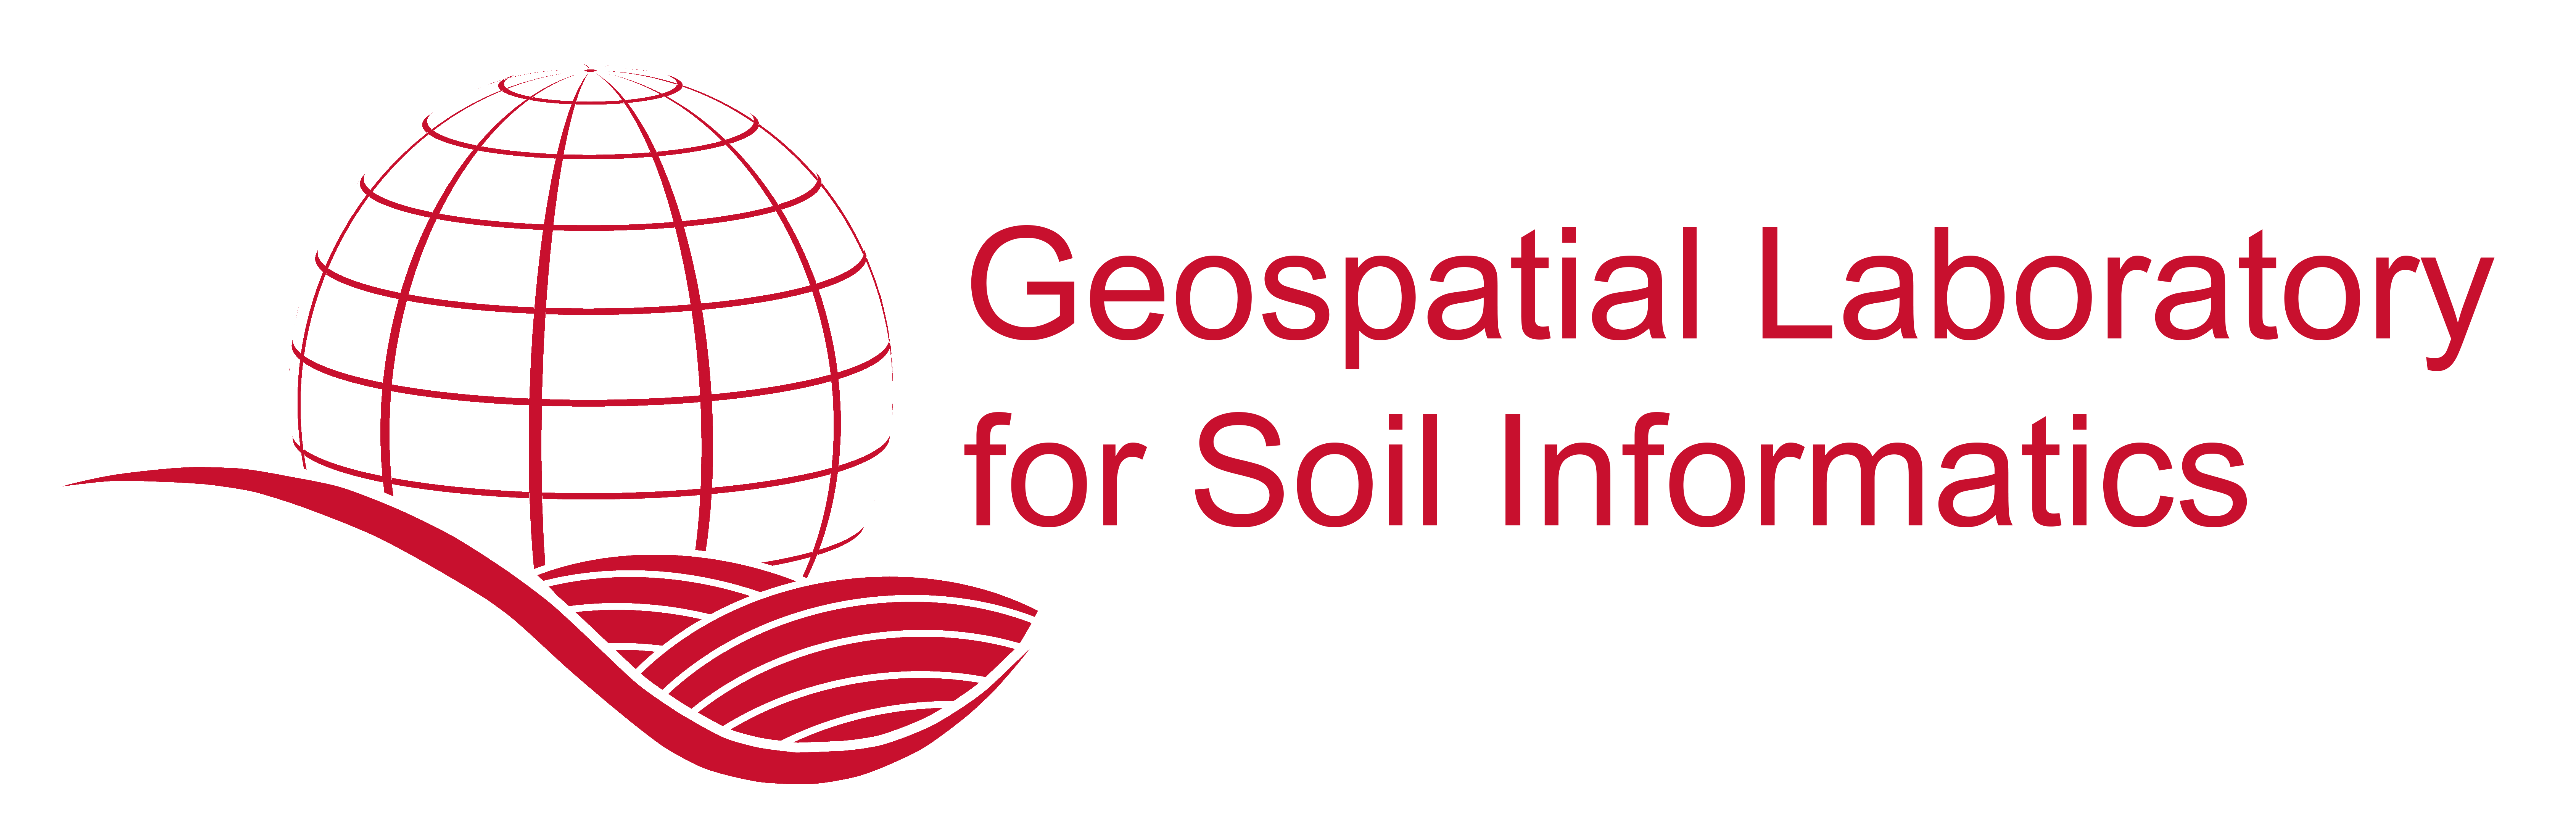 Geography clipart delta geography. Soil quality assessment in